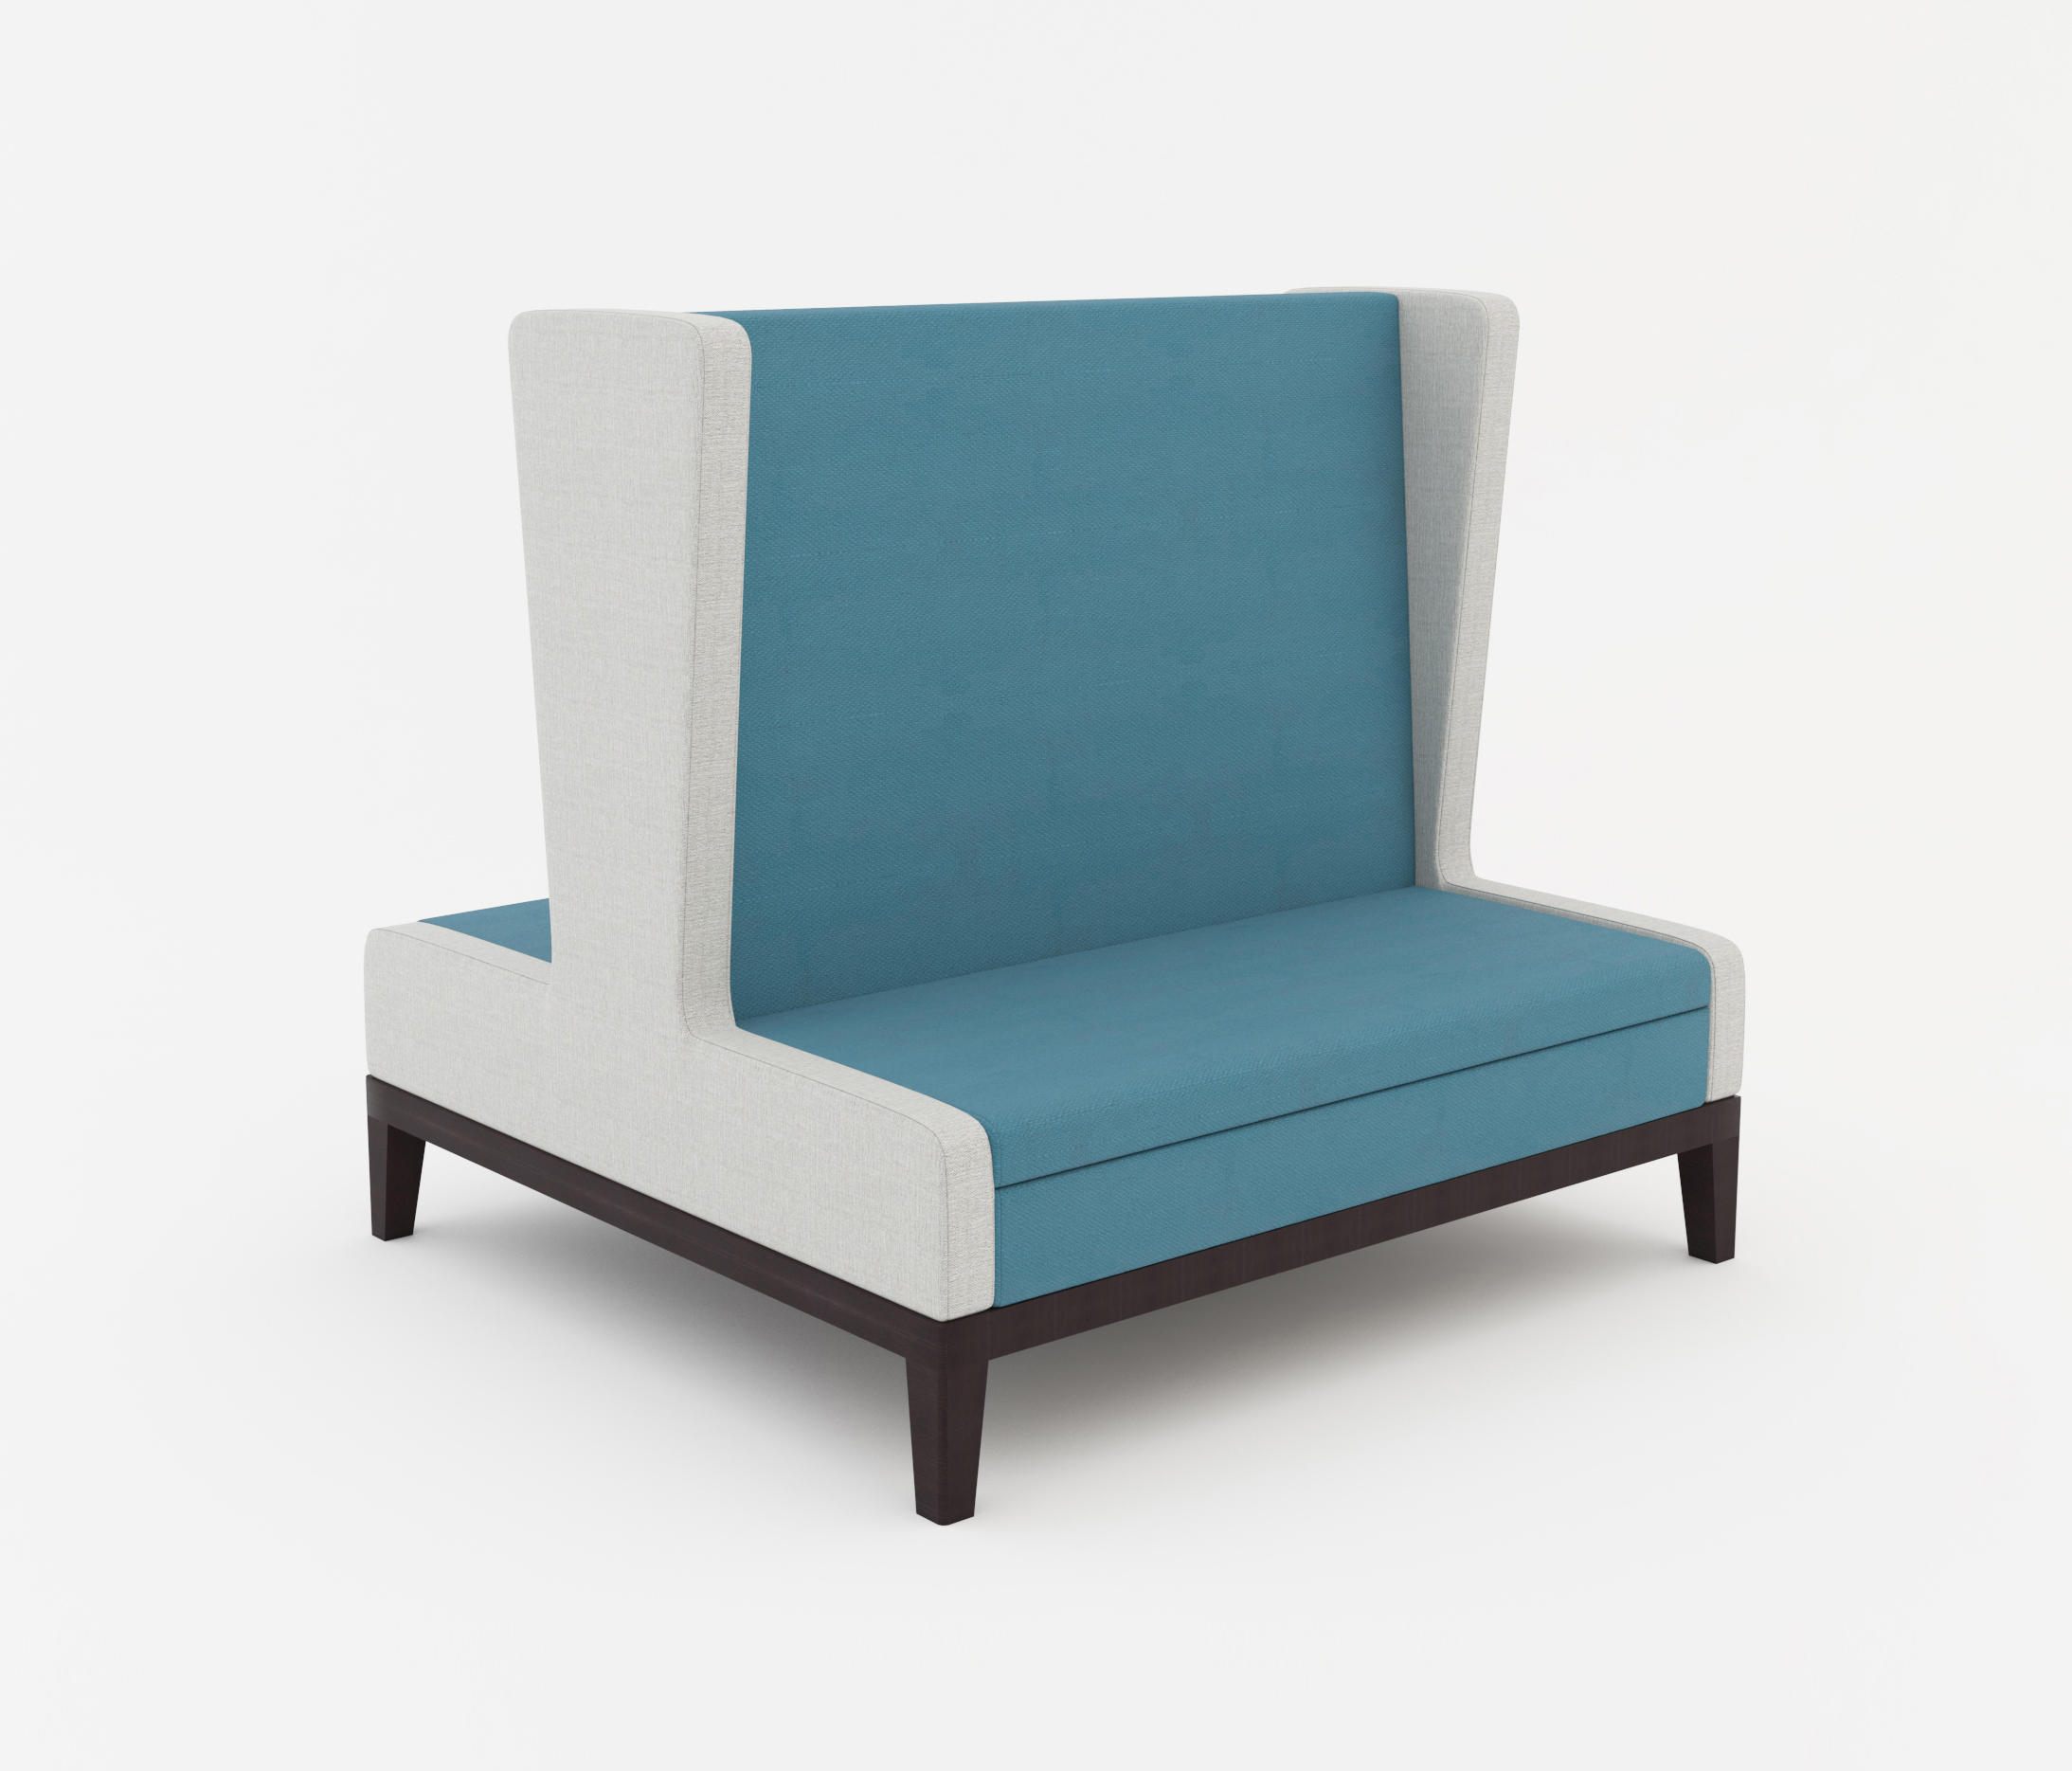 Symphony Two Seat High Back Banquette Back To Back By ERG International |  Restaurant Seating Systems